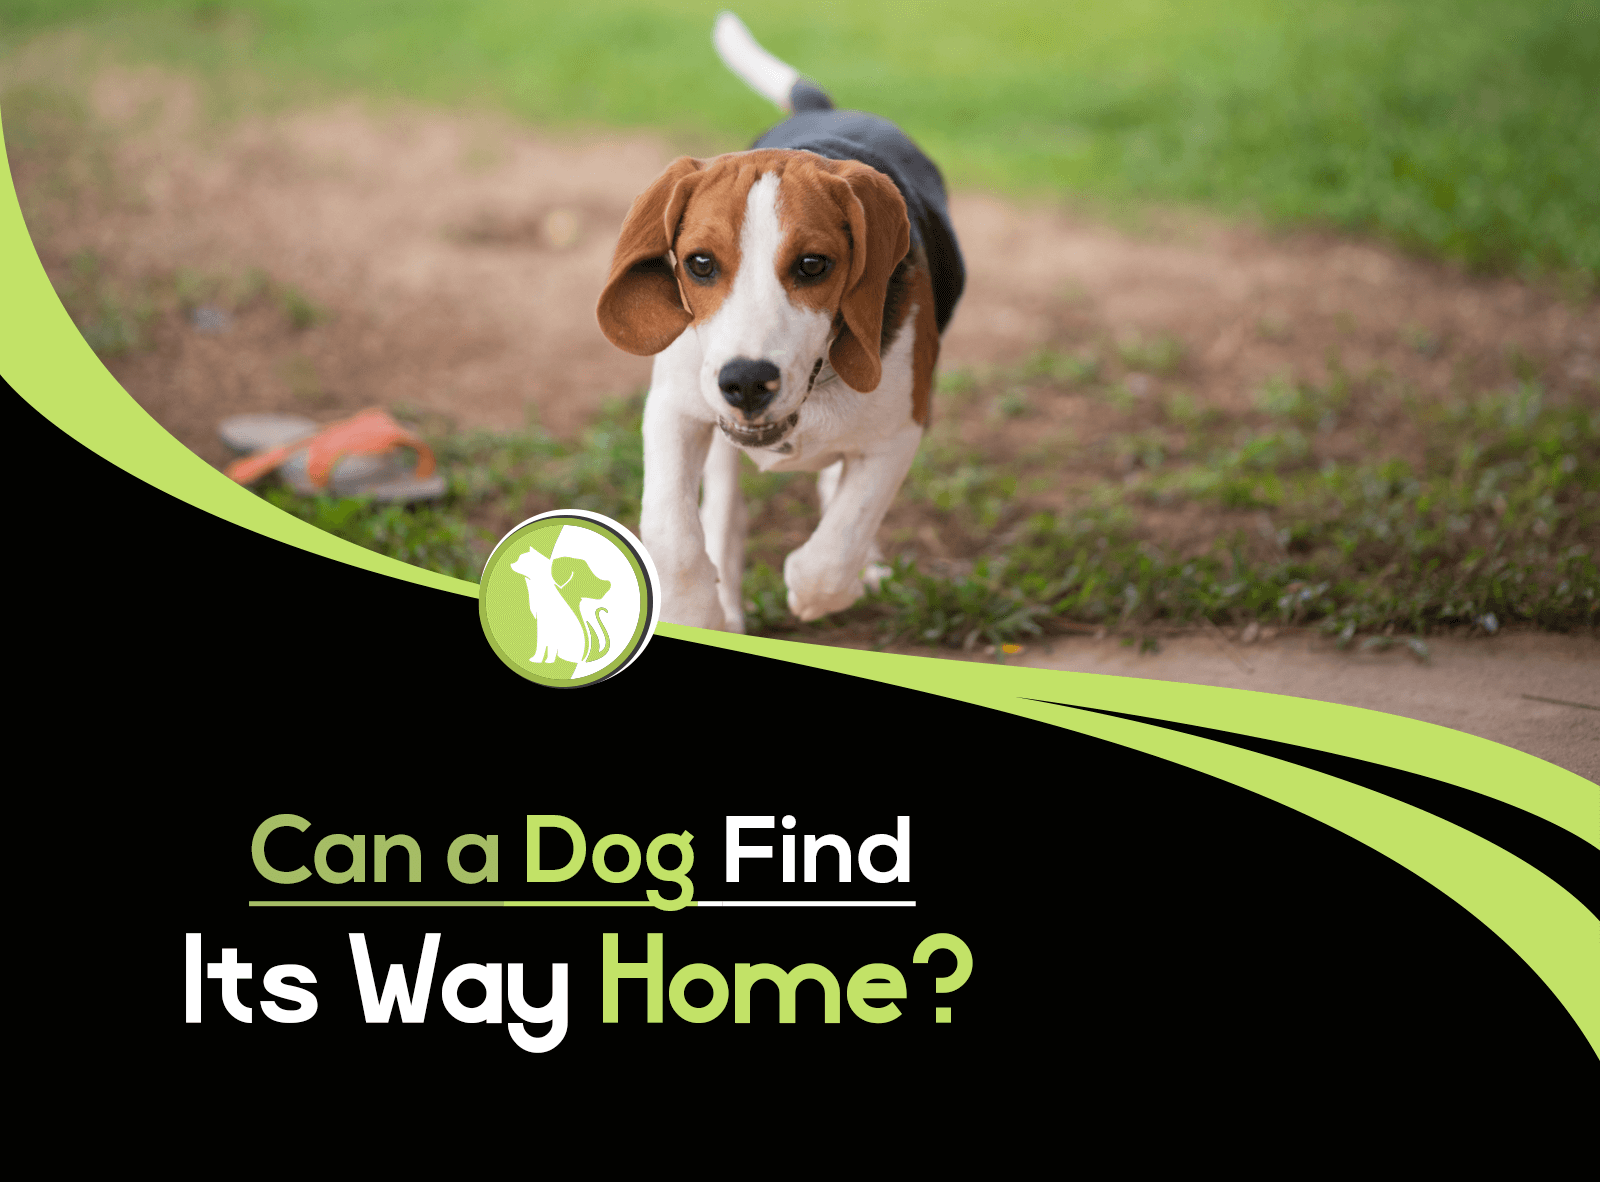 Can a Dog Find Its Way Home?